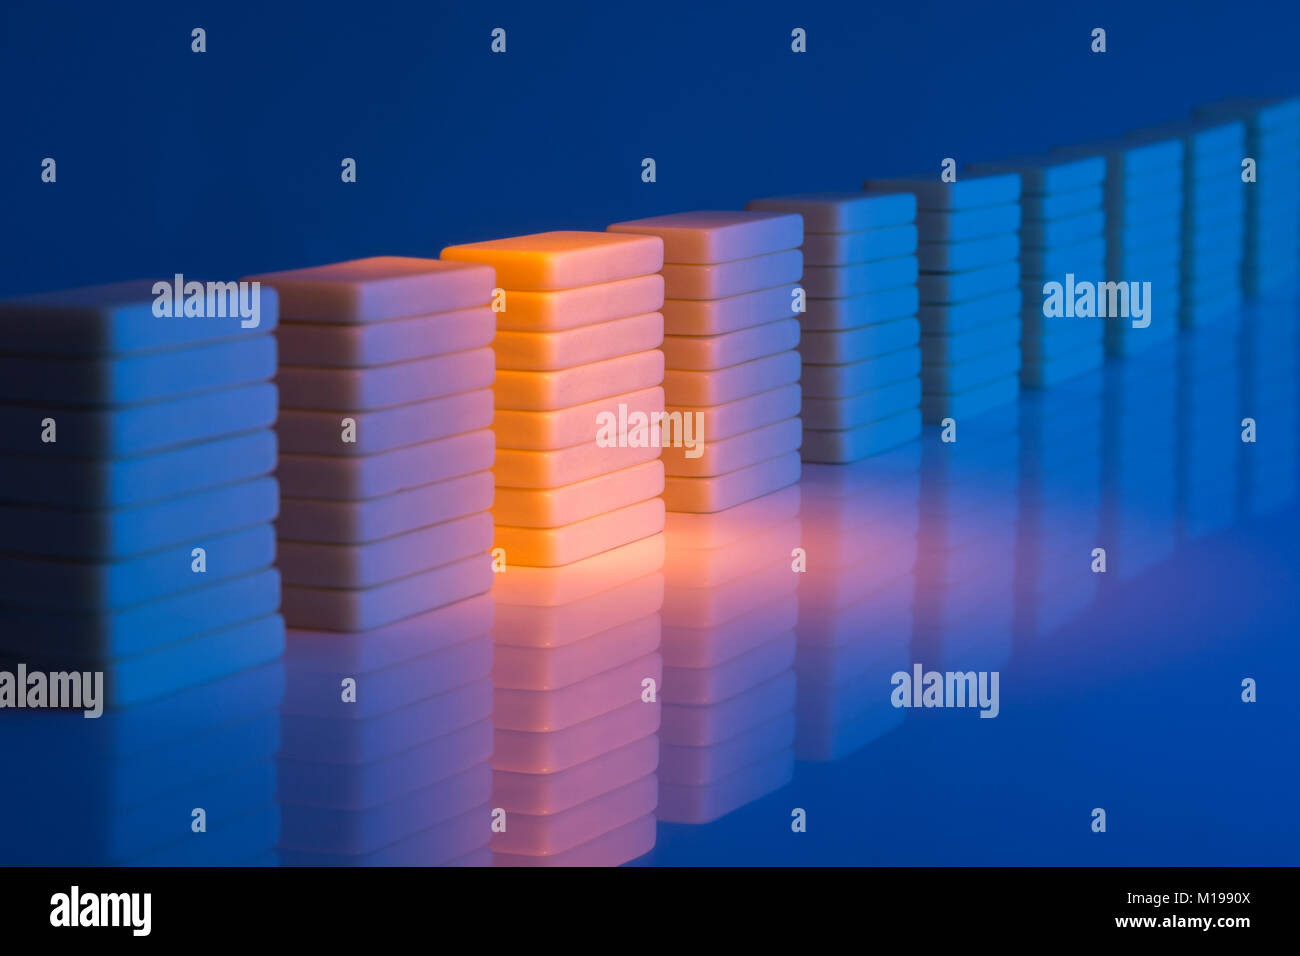 Dominoes on reflective surface. Metaphor for concept of data storage, server farm, or server farm abstract. Data - Stock Image